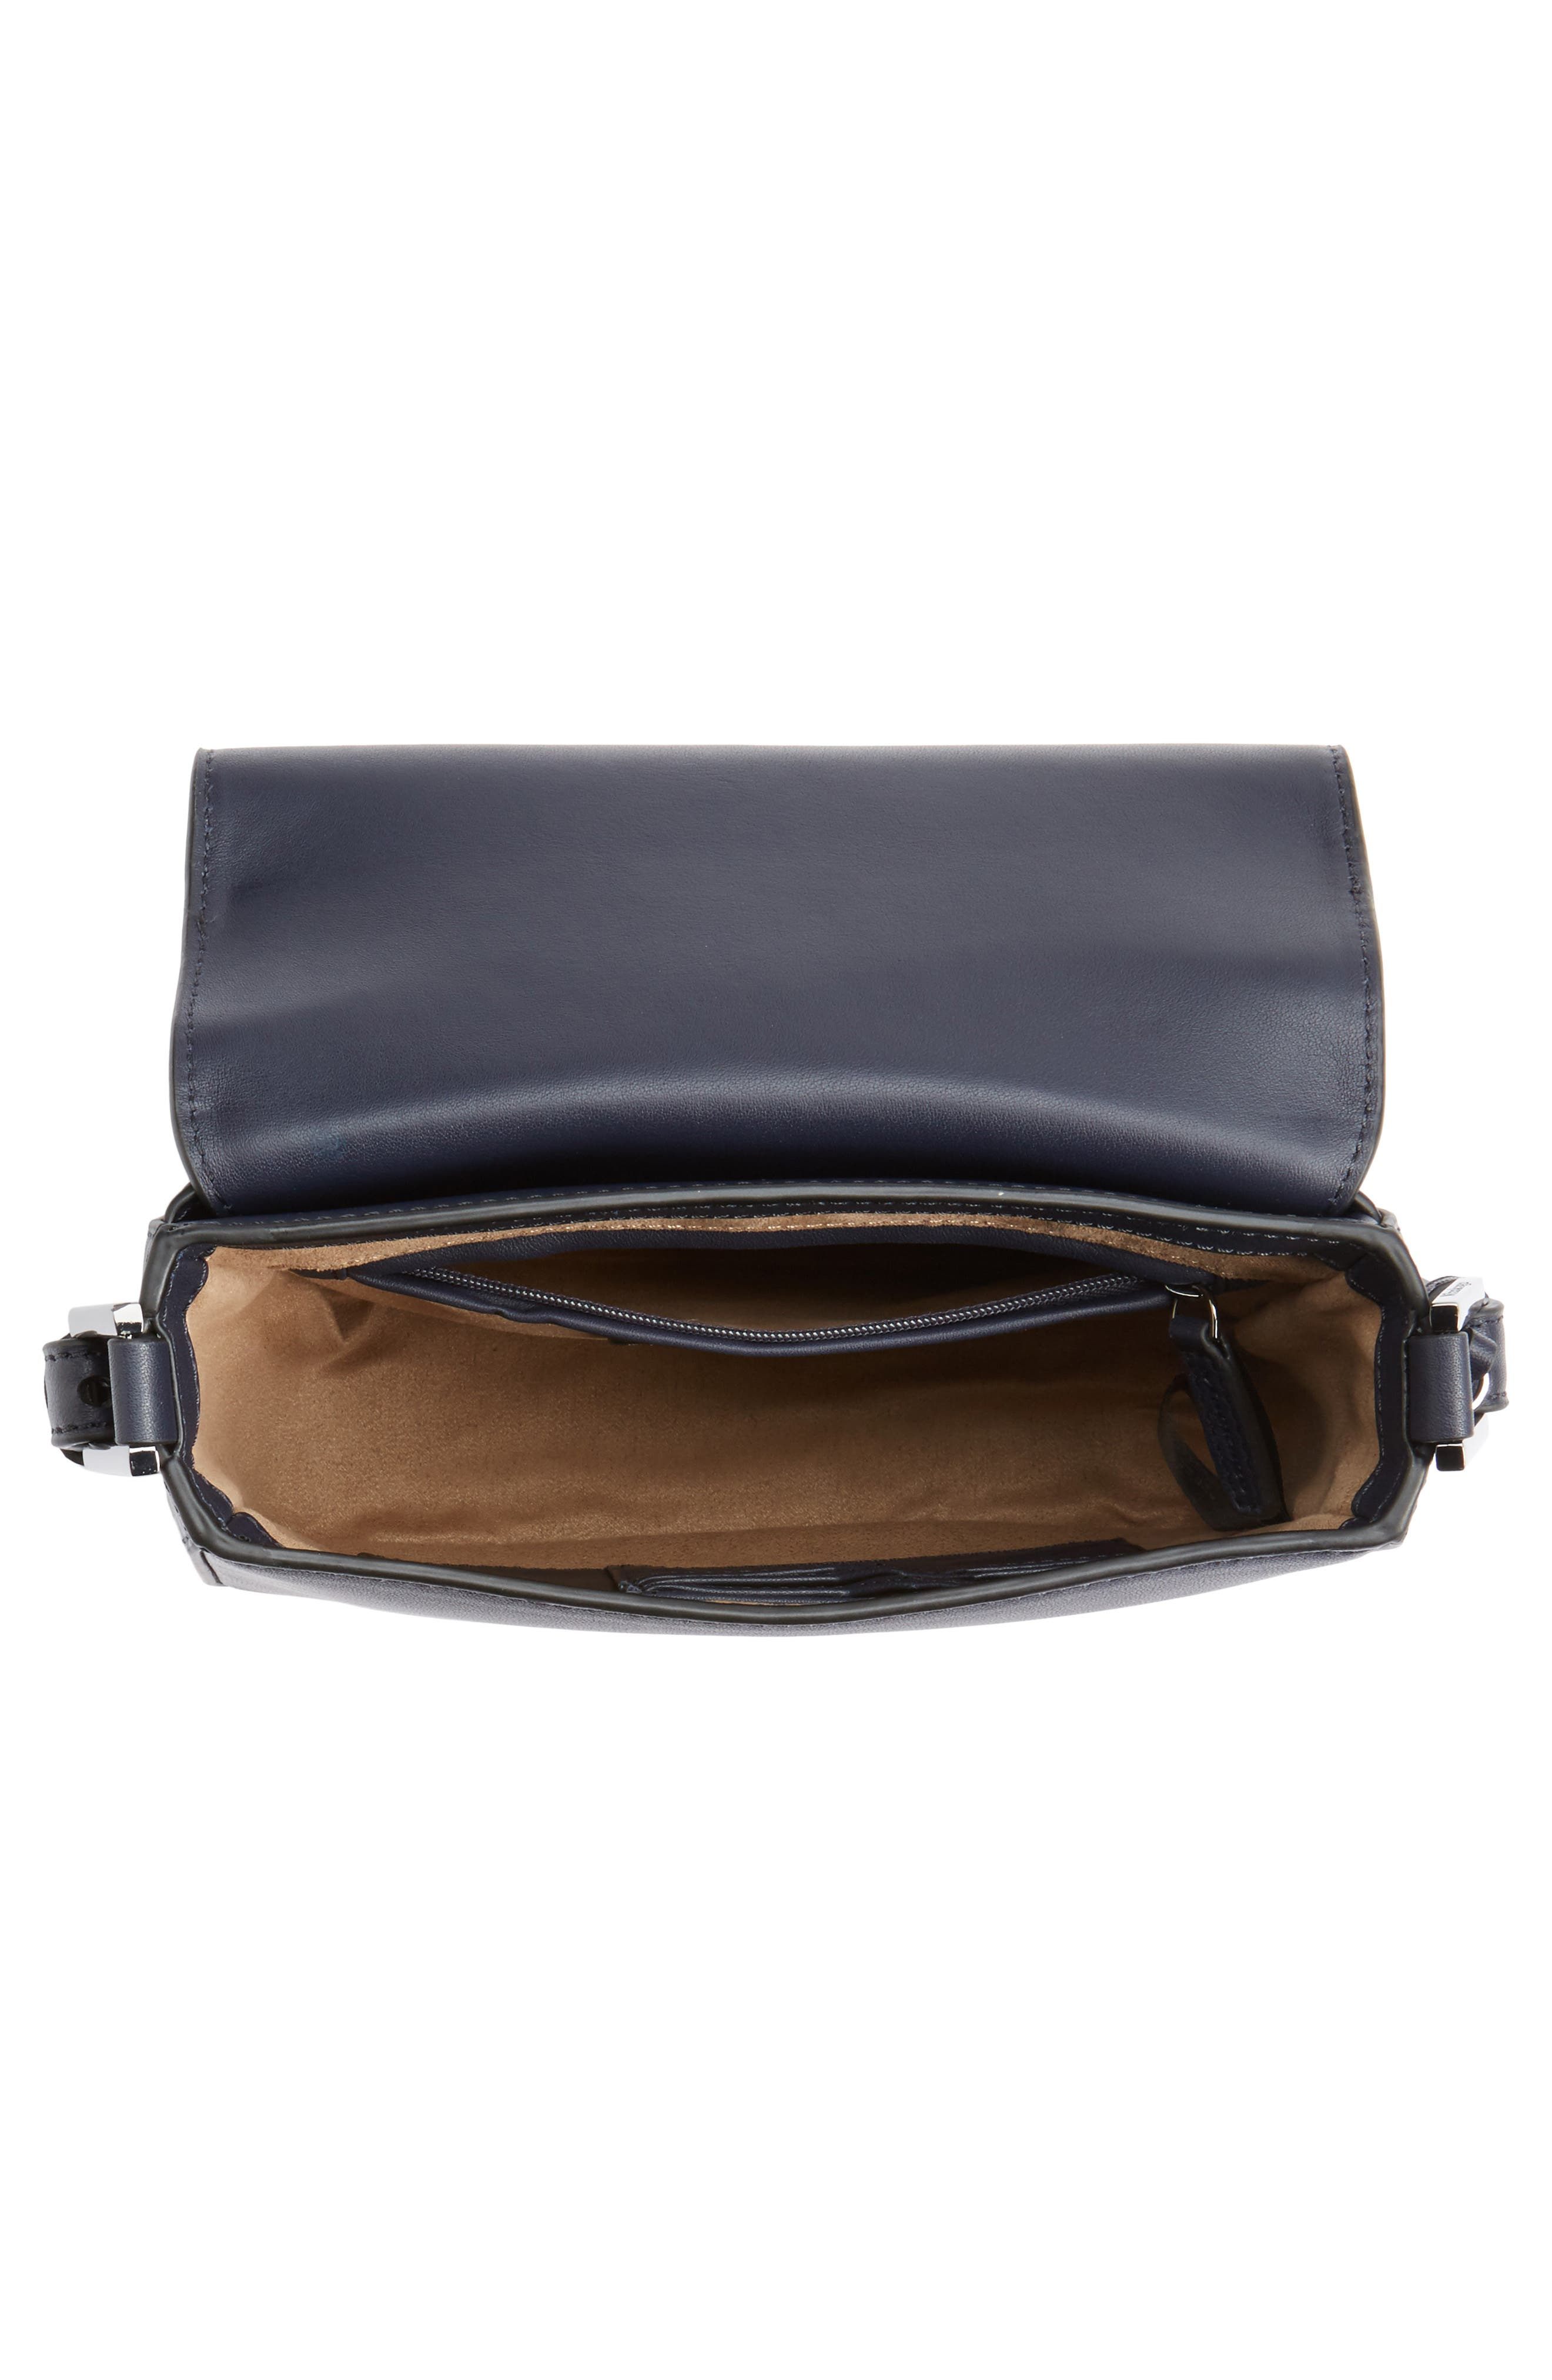 Dion Nappa Leather Crossbody Bag,                             Alternate thumbnail 4, color,                             481